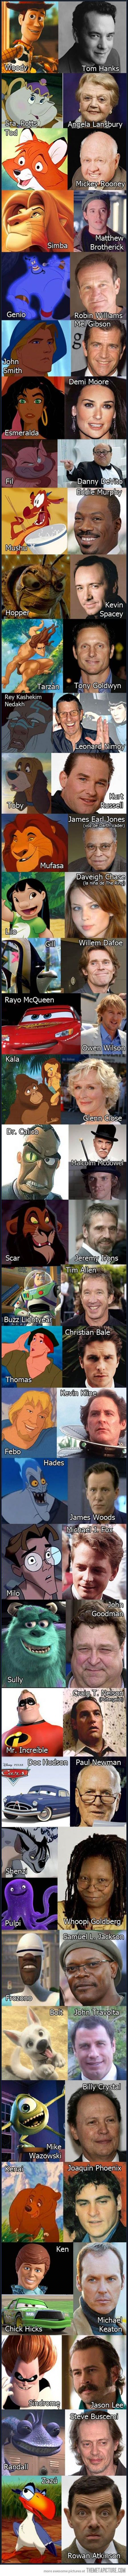 Disney characters and their real faces… I love this!